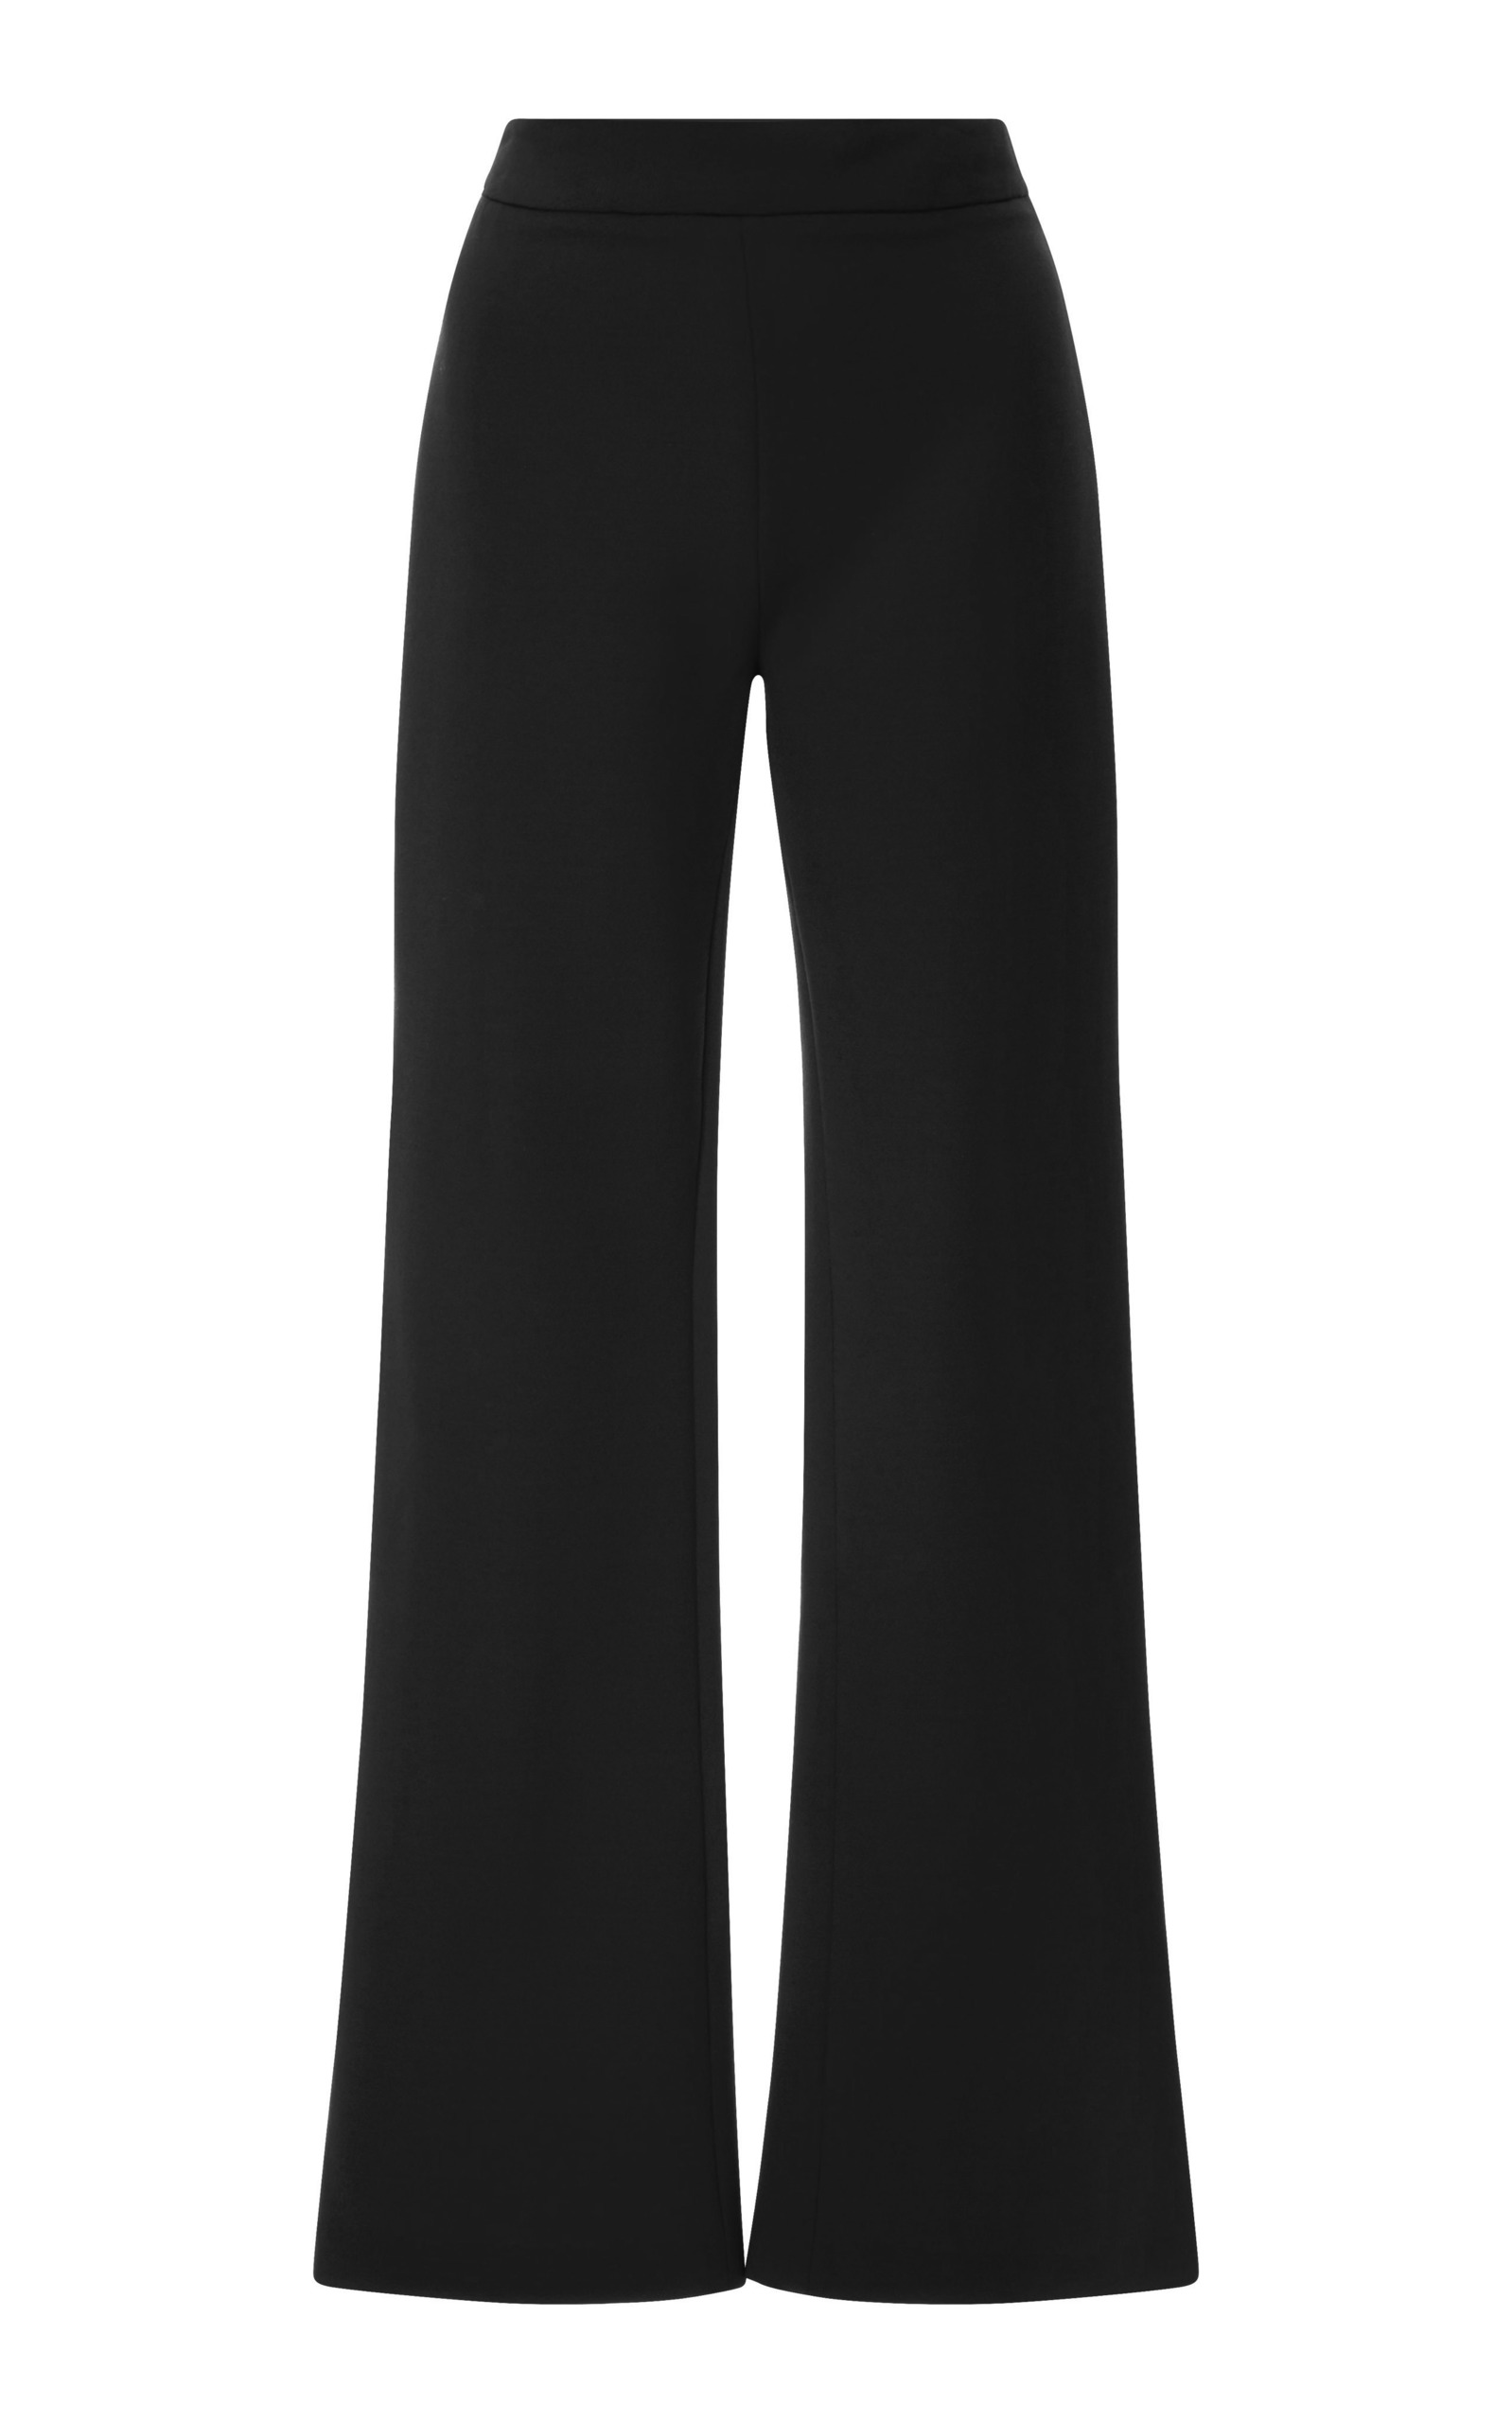 flared Donna pants Jeffrey Dodd xV0PL